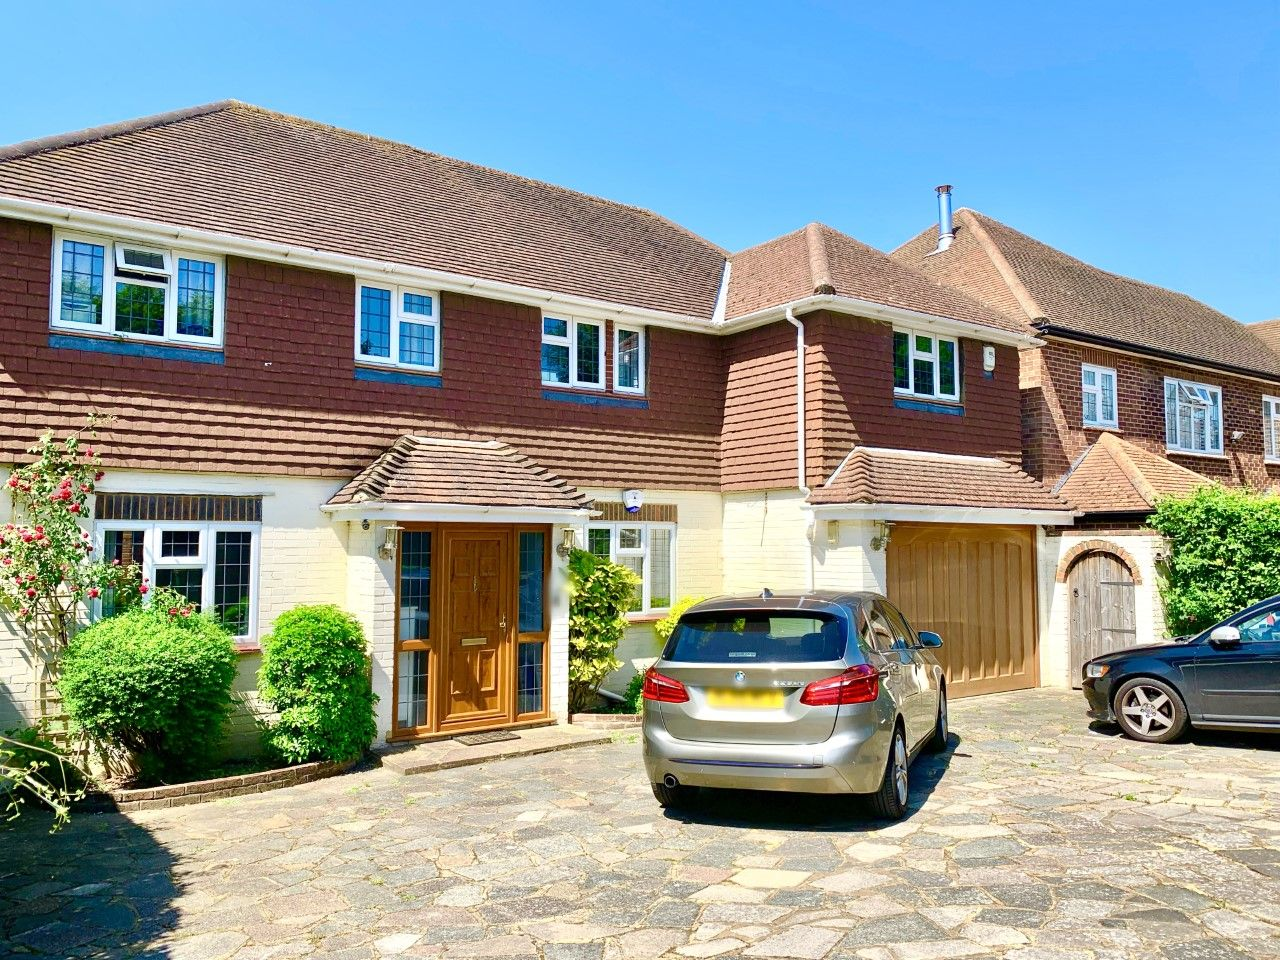 4 bedroom detached house To Let in Sutton - Photograph 1.